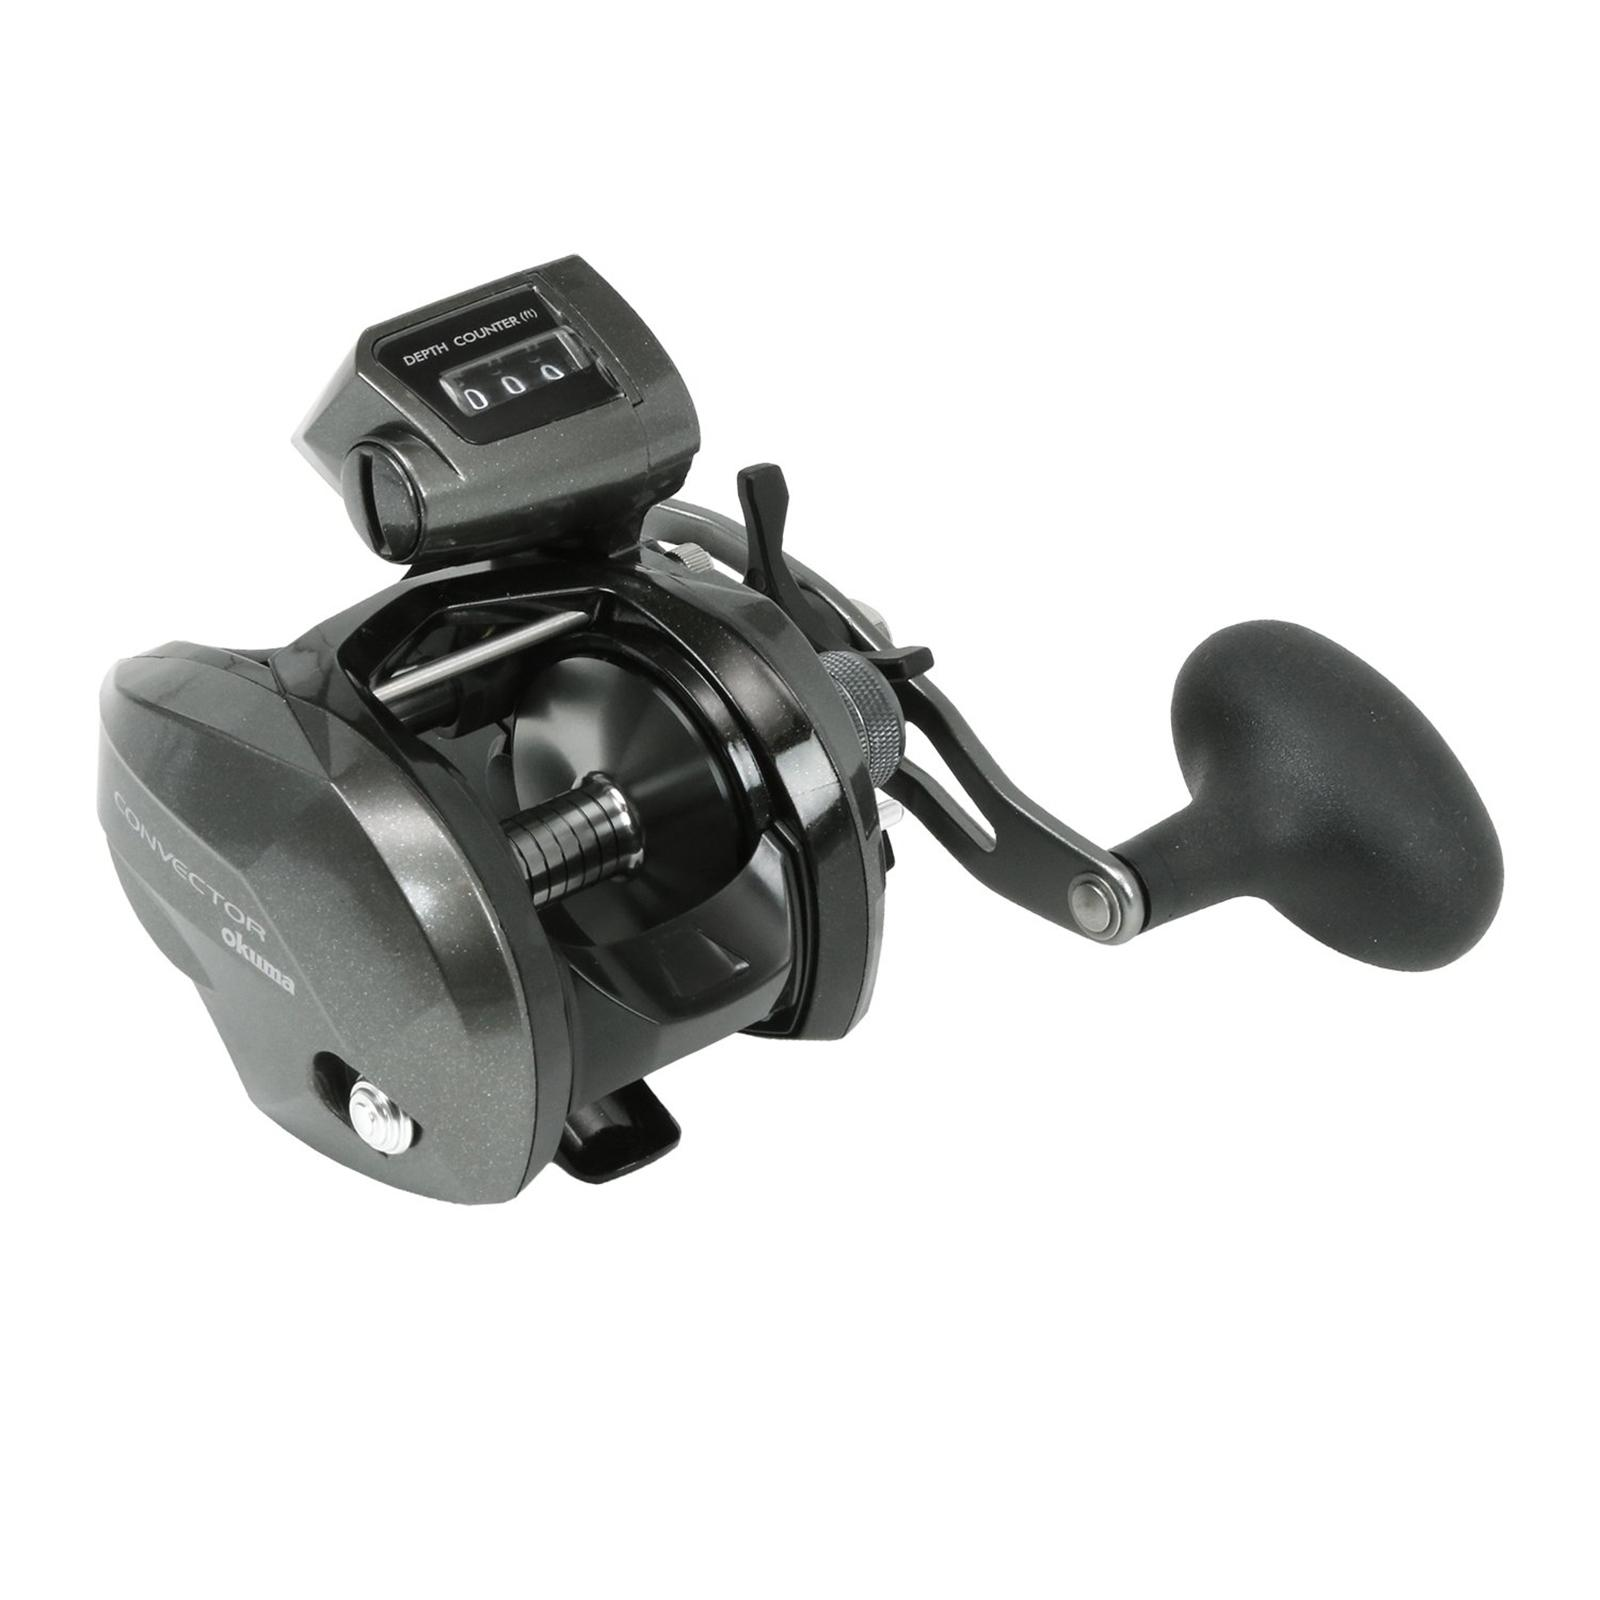 Okuma Convector Low-Profile Casting Reel Left Angle